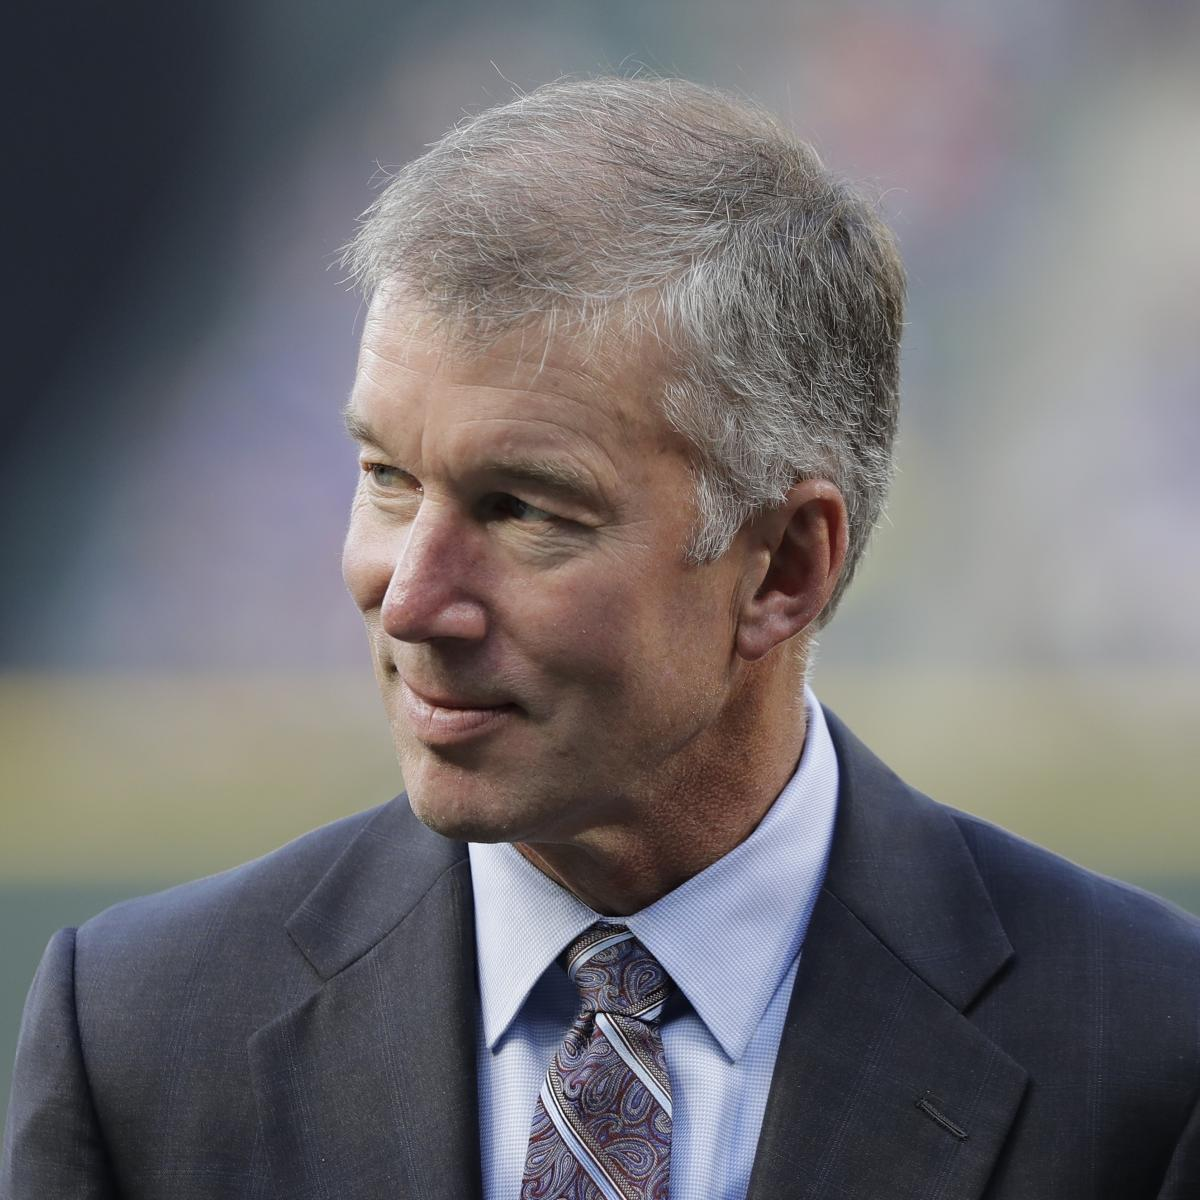 Kevin Mather Resigns as Mariners President Following 'Inappropriate' Comments thumbnail